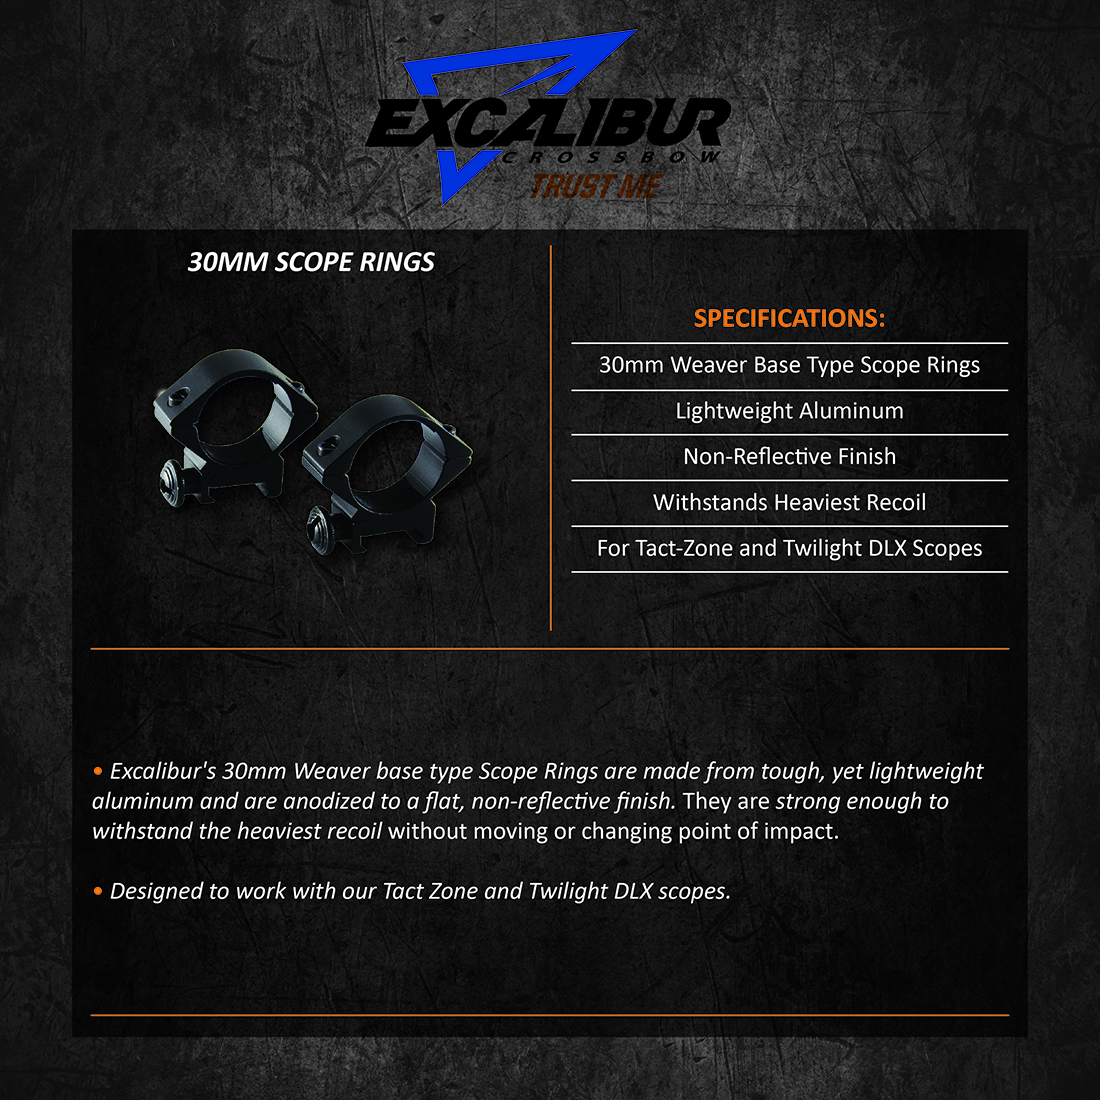 Excalibur_30mm_Scope_Rings_Product_Description